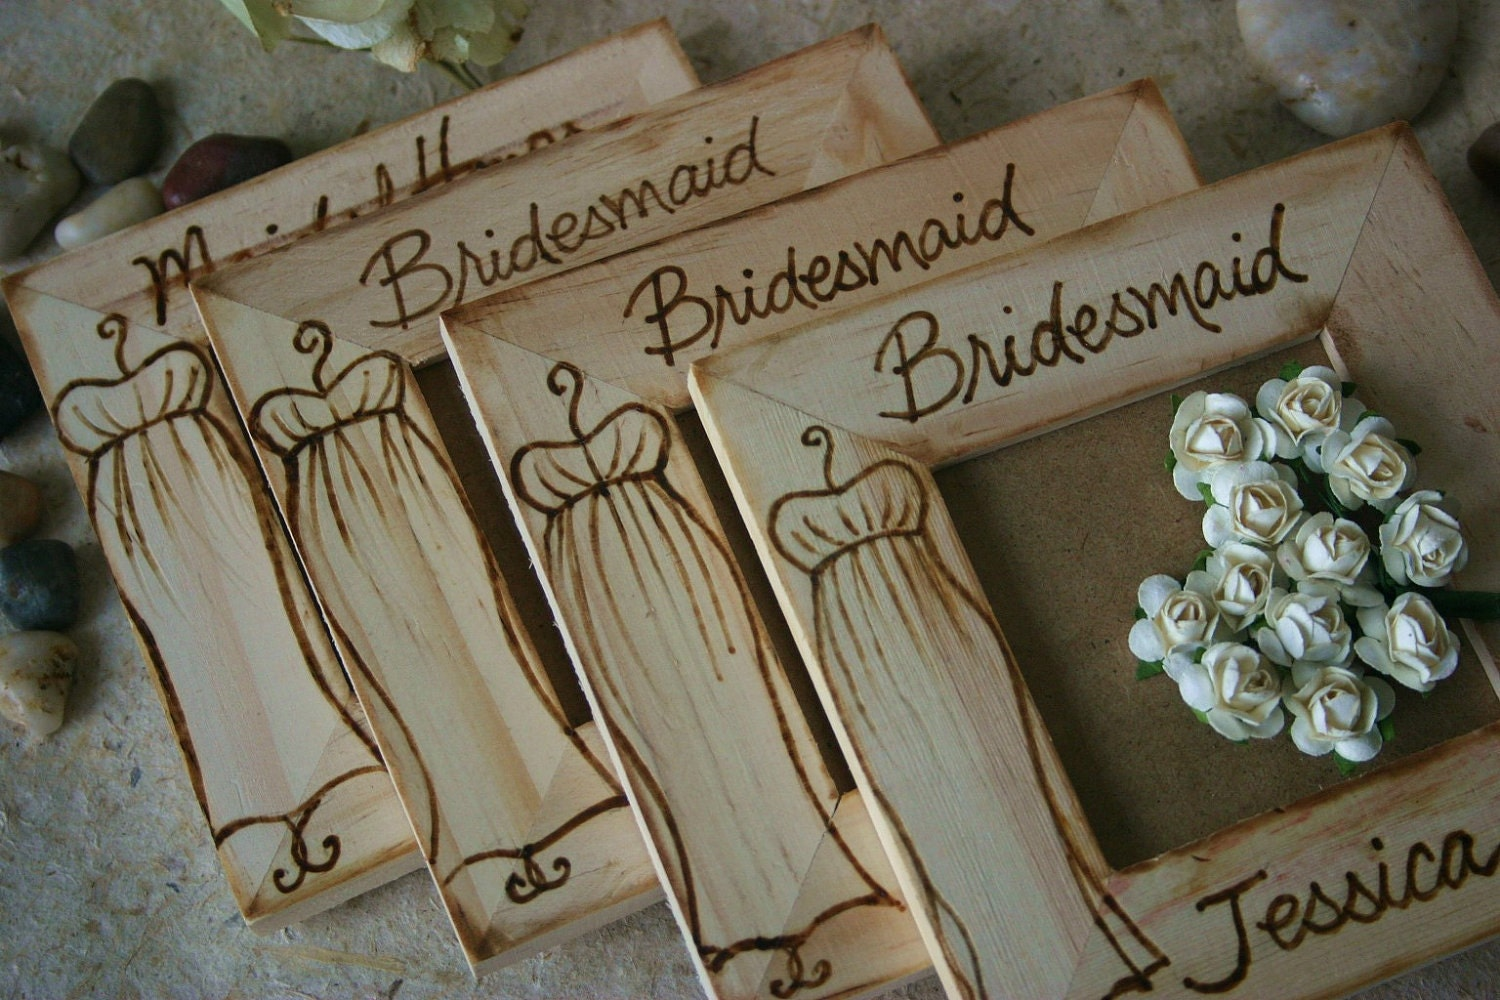 Unique Gifts Wedding: Personalized Bridesmaid Favors Gifts Bridal Party Gifts